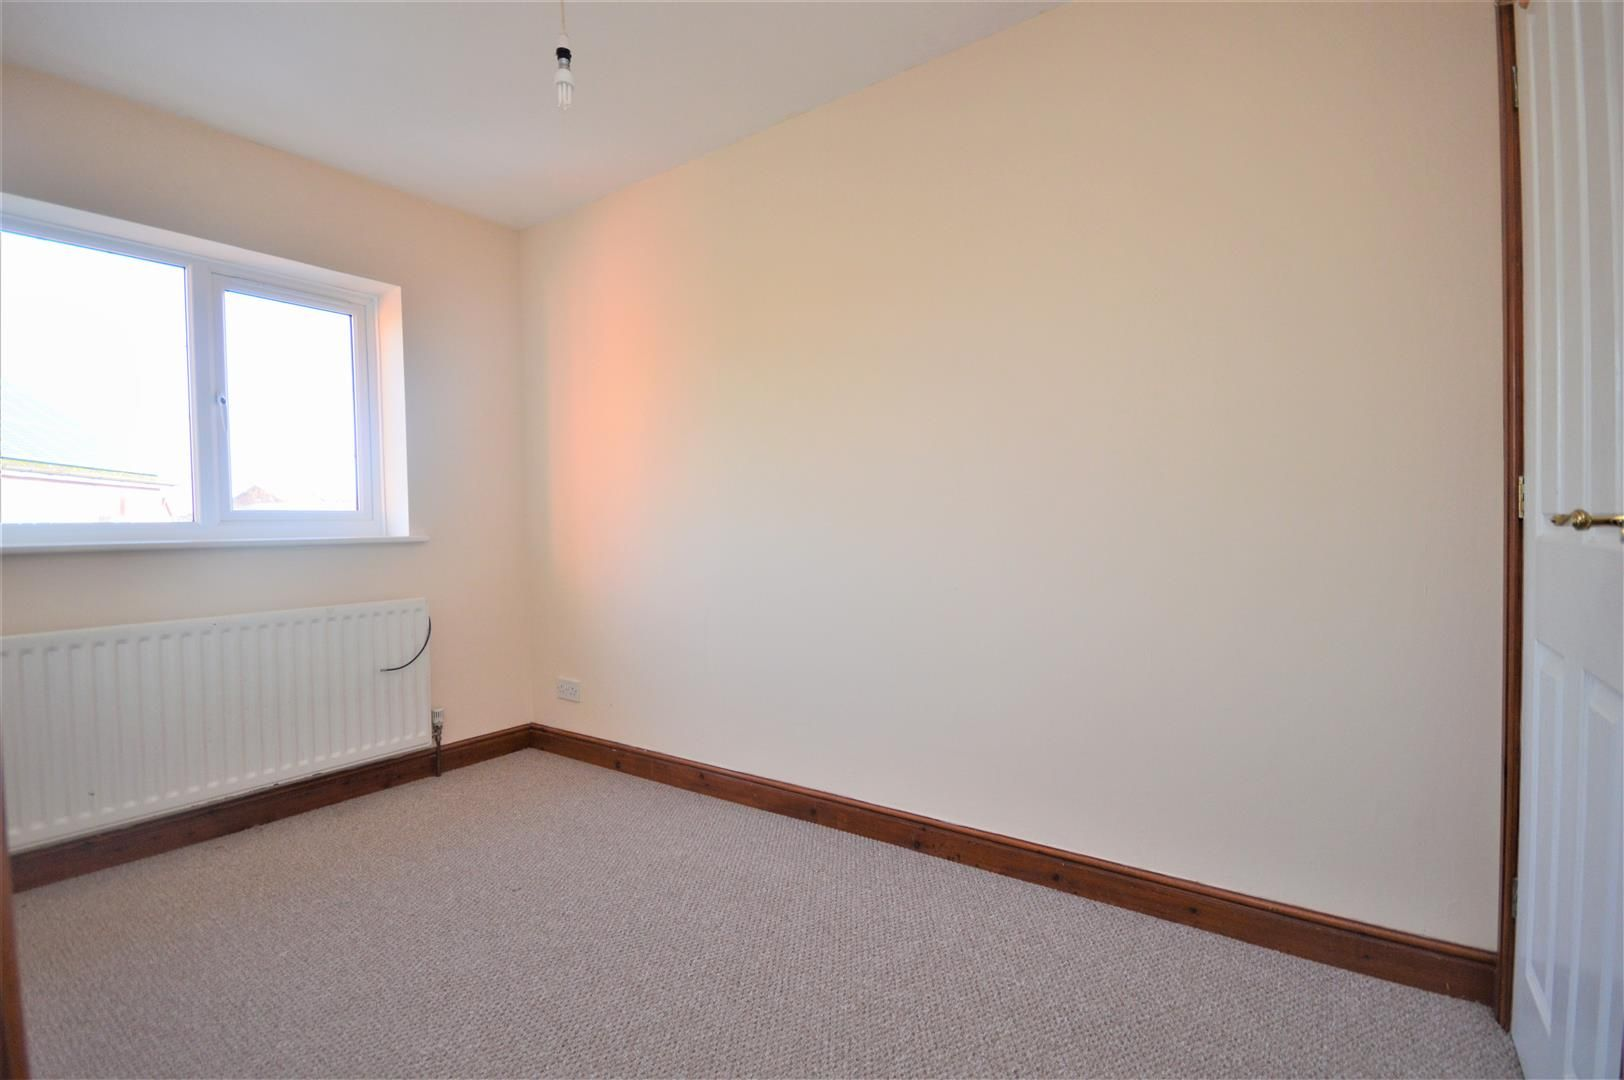 2 bed terraced for sale in Lower Bullingham 7